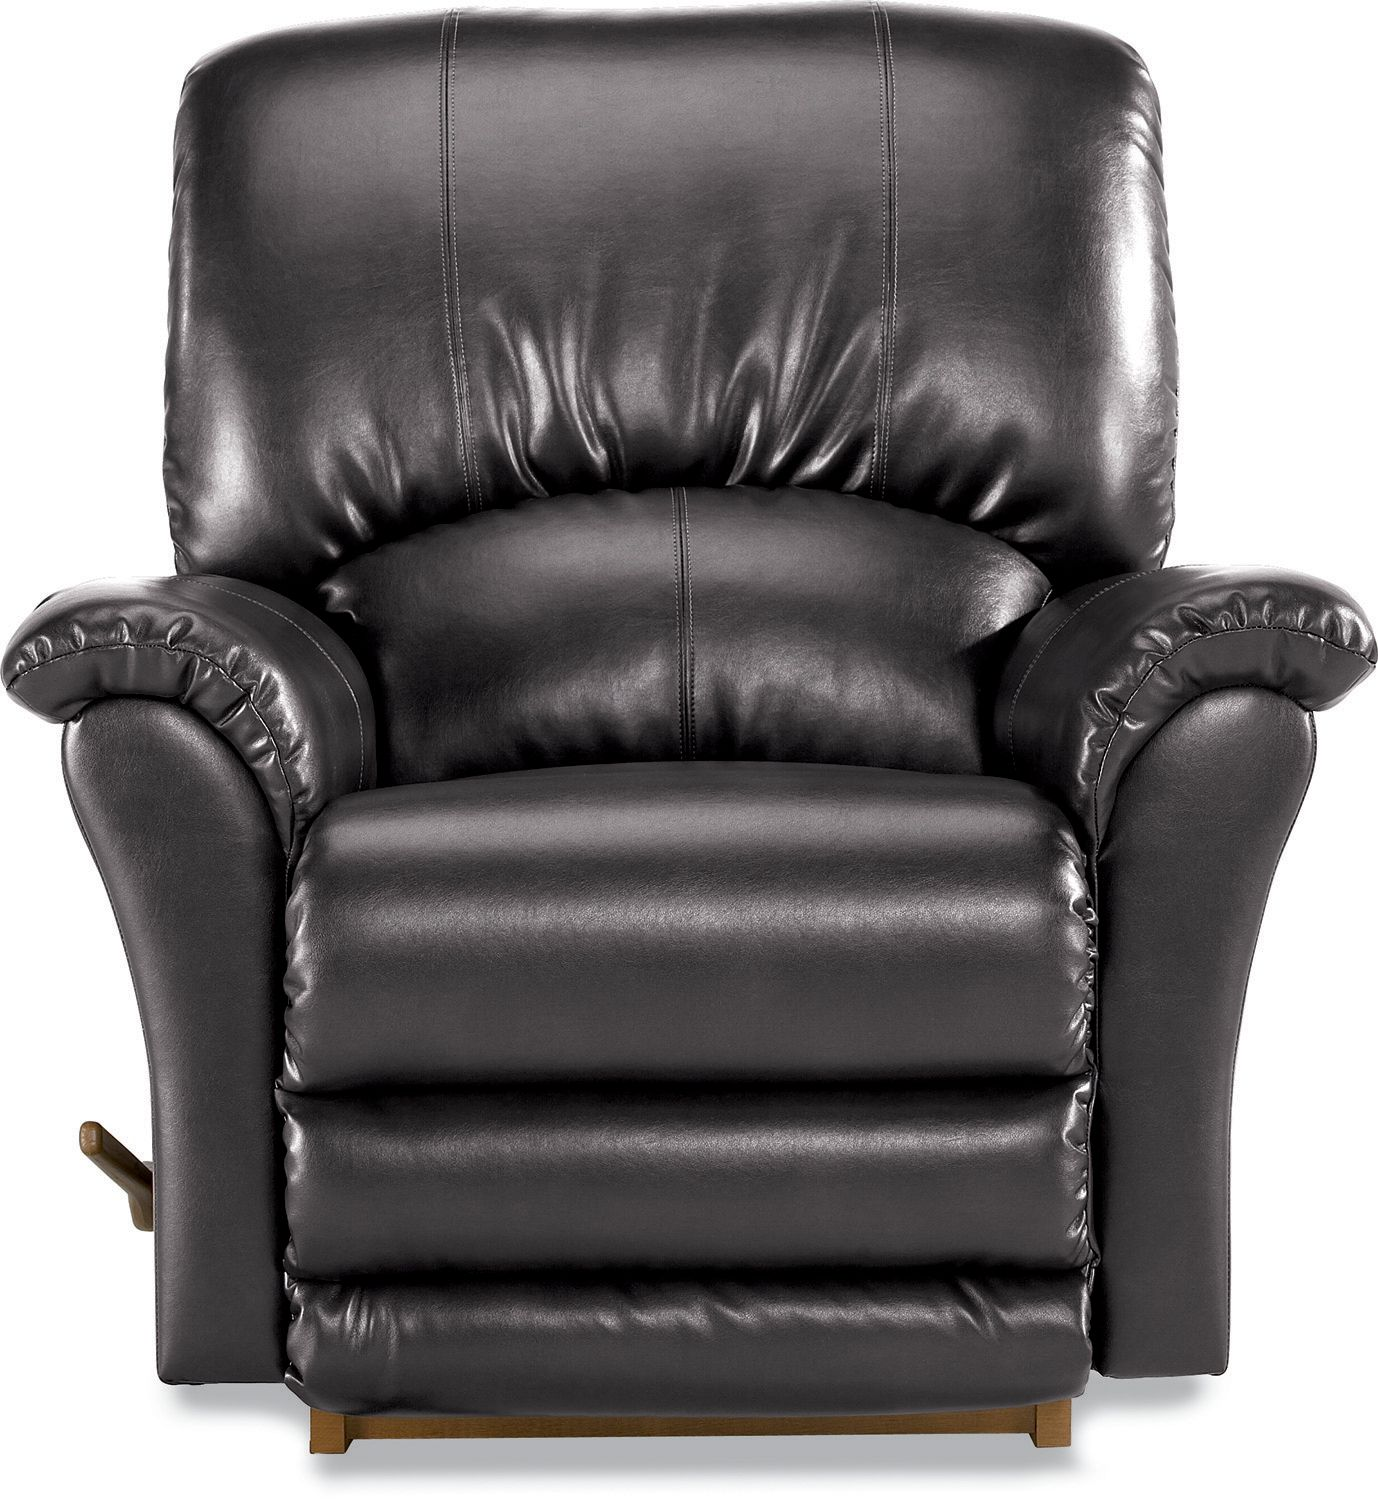 La-Z-Boy CANTINA ROCKER RECLINER BLACK